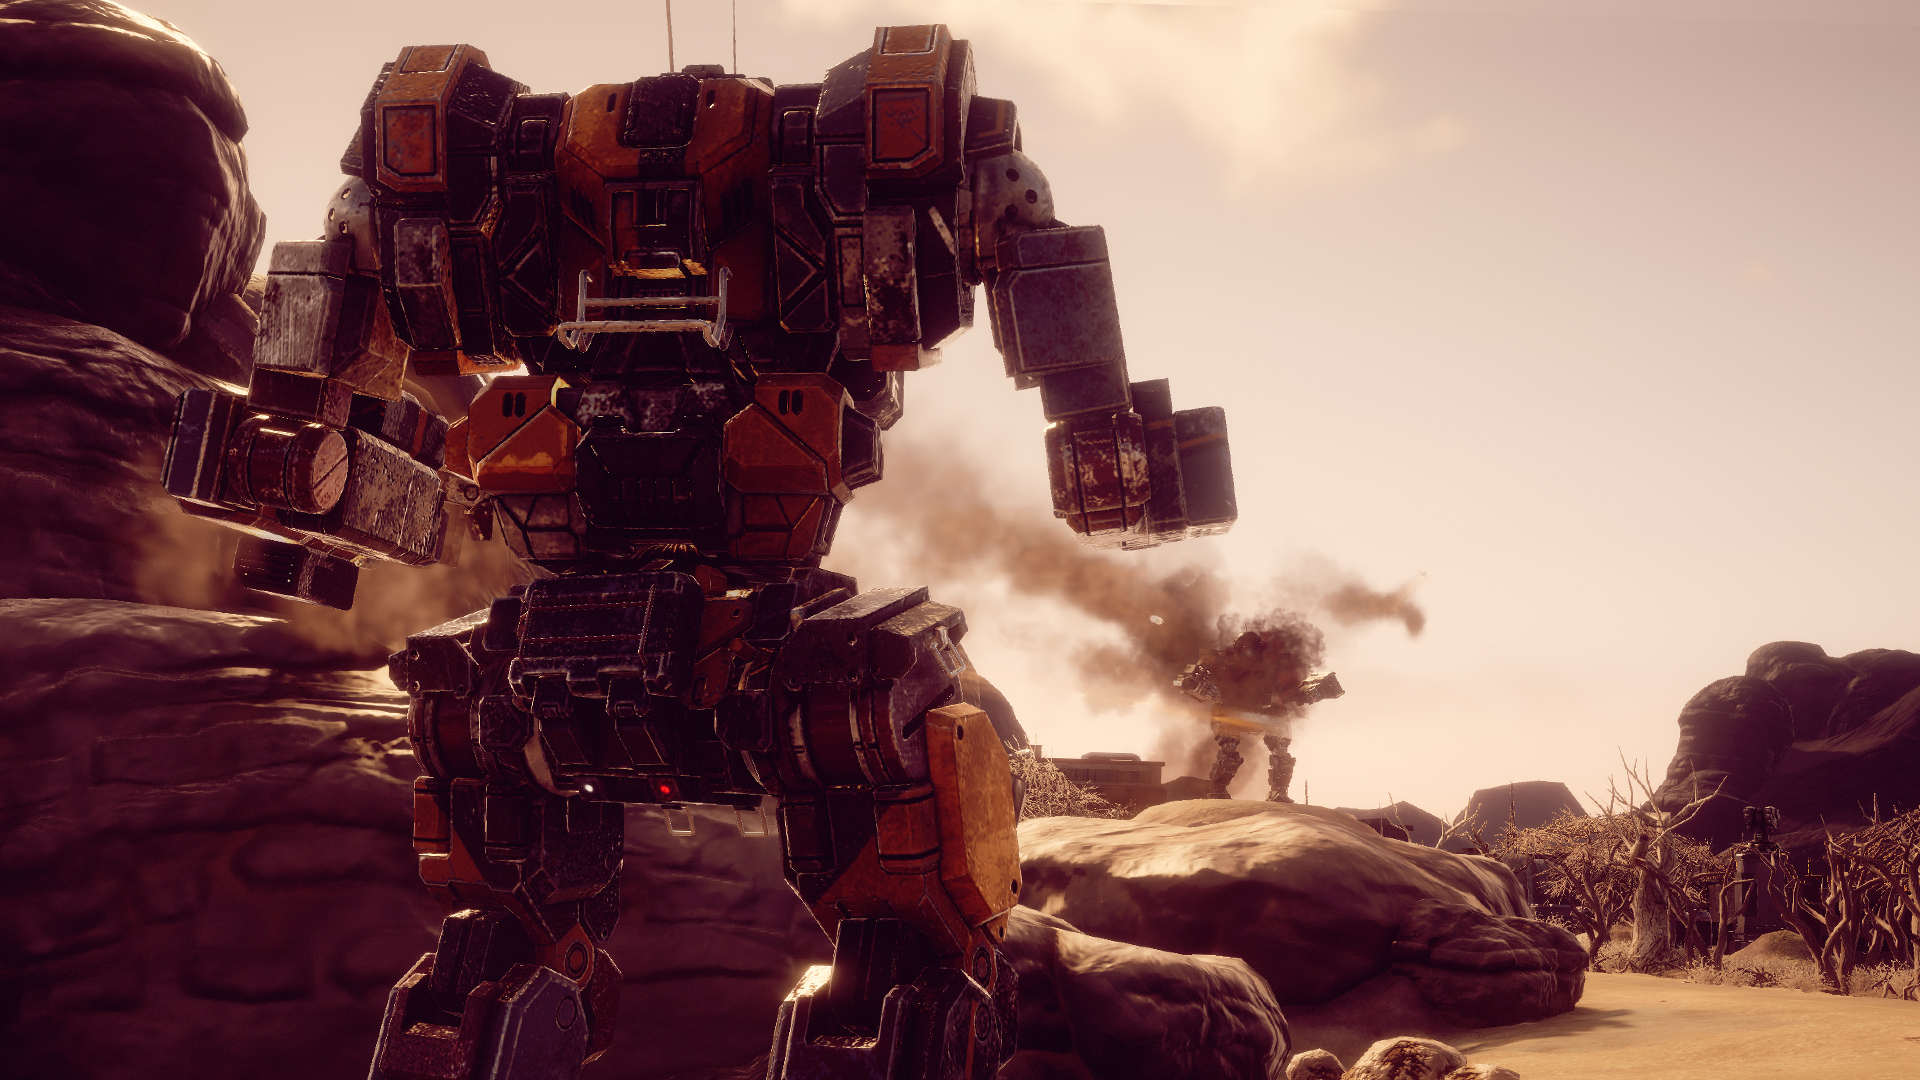 Half the battle in BattleTech is paying the bills | PC Gamer